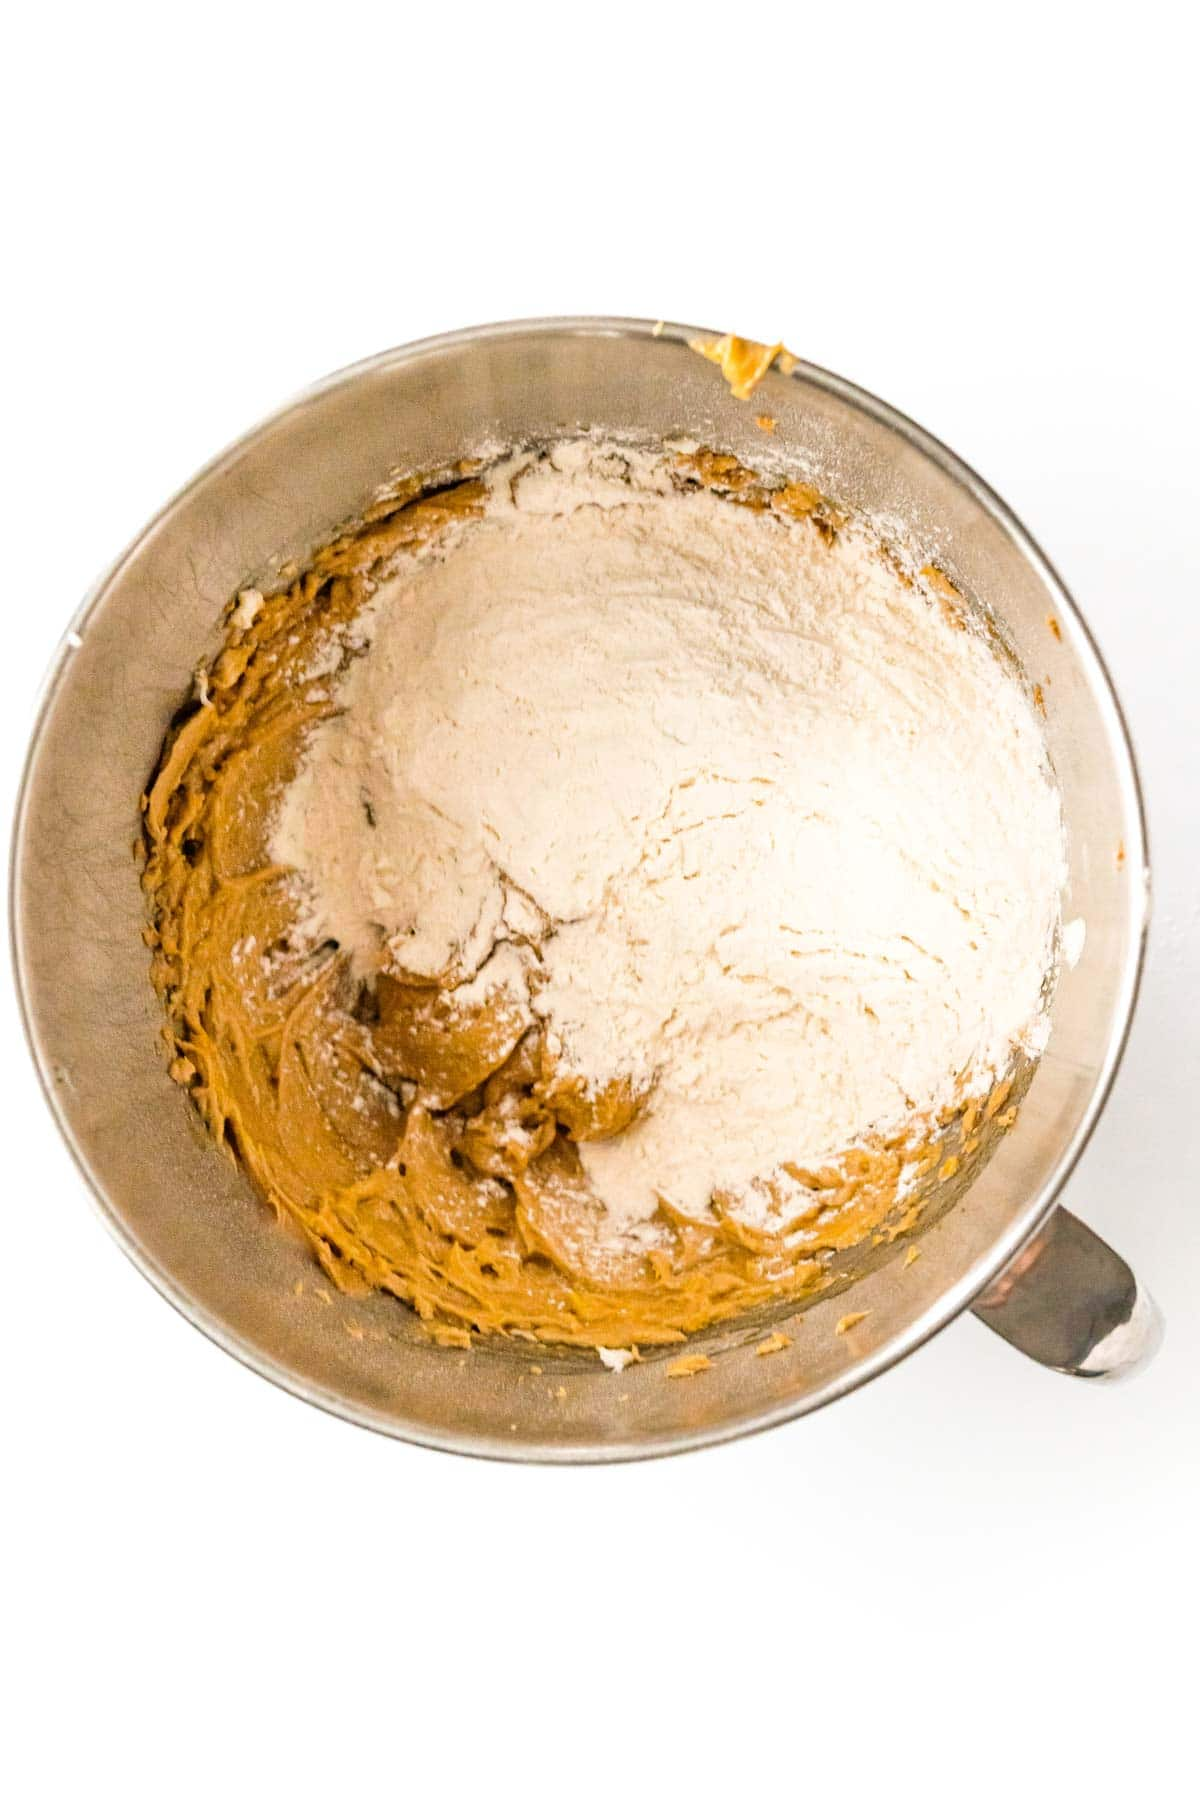 Flour and other ingredients in a metal mixing bowl